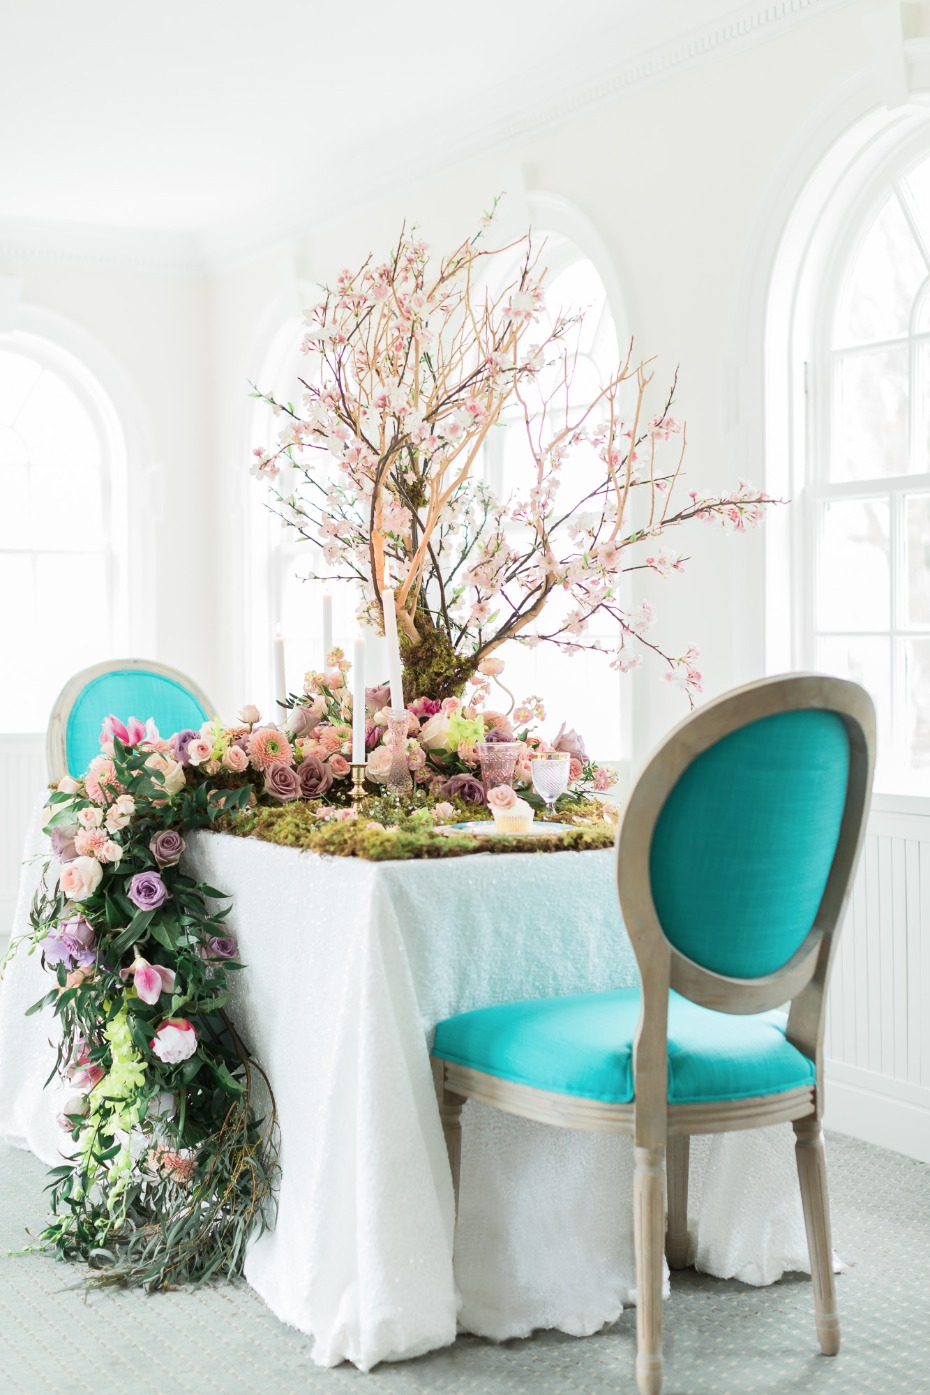 Teal chairs for this garden table setting